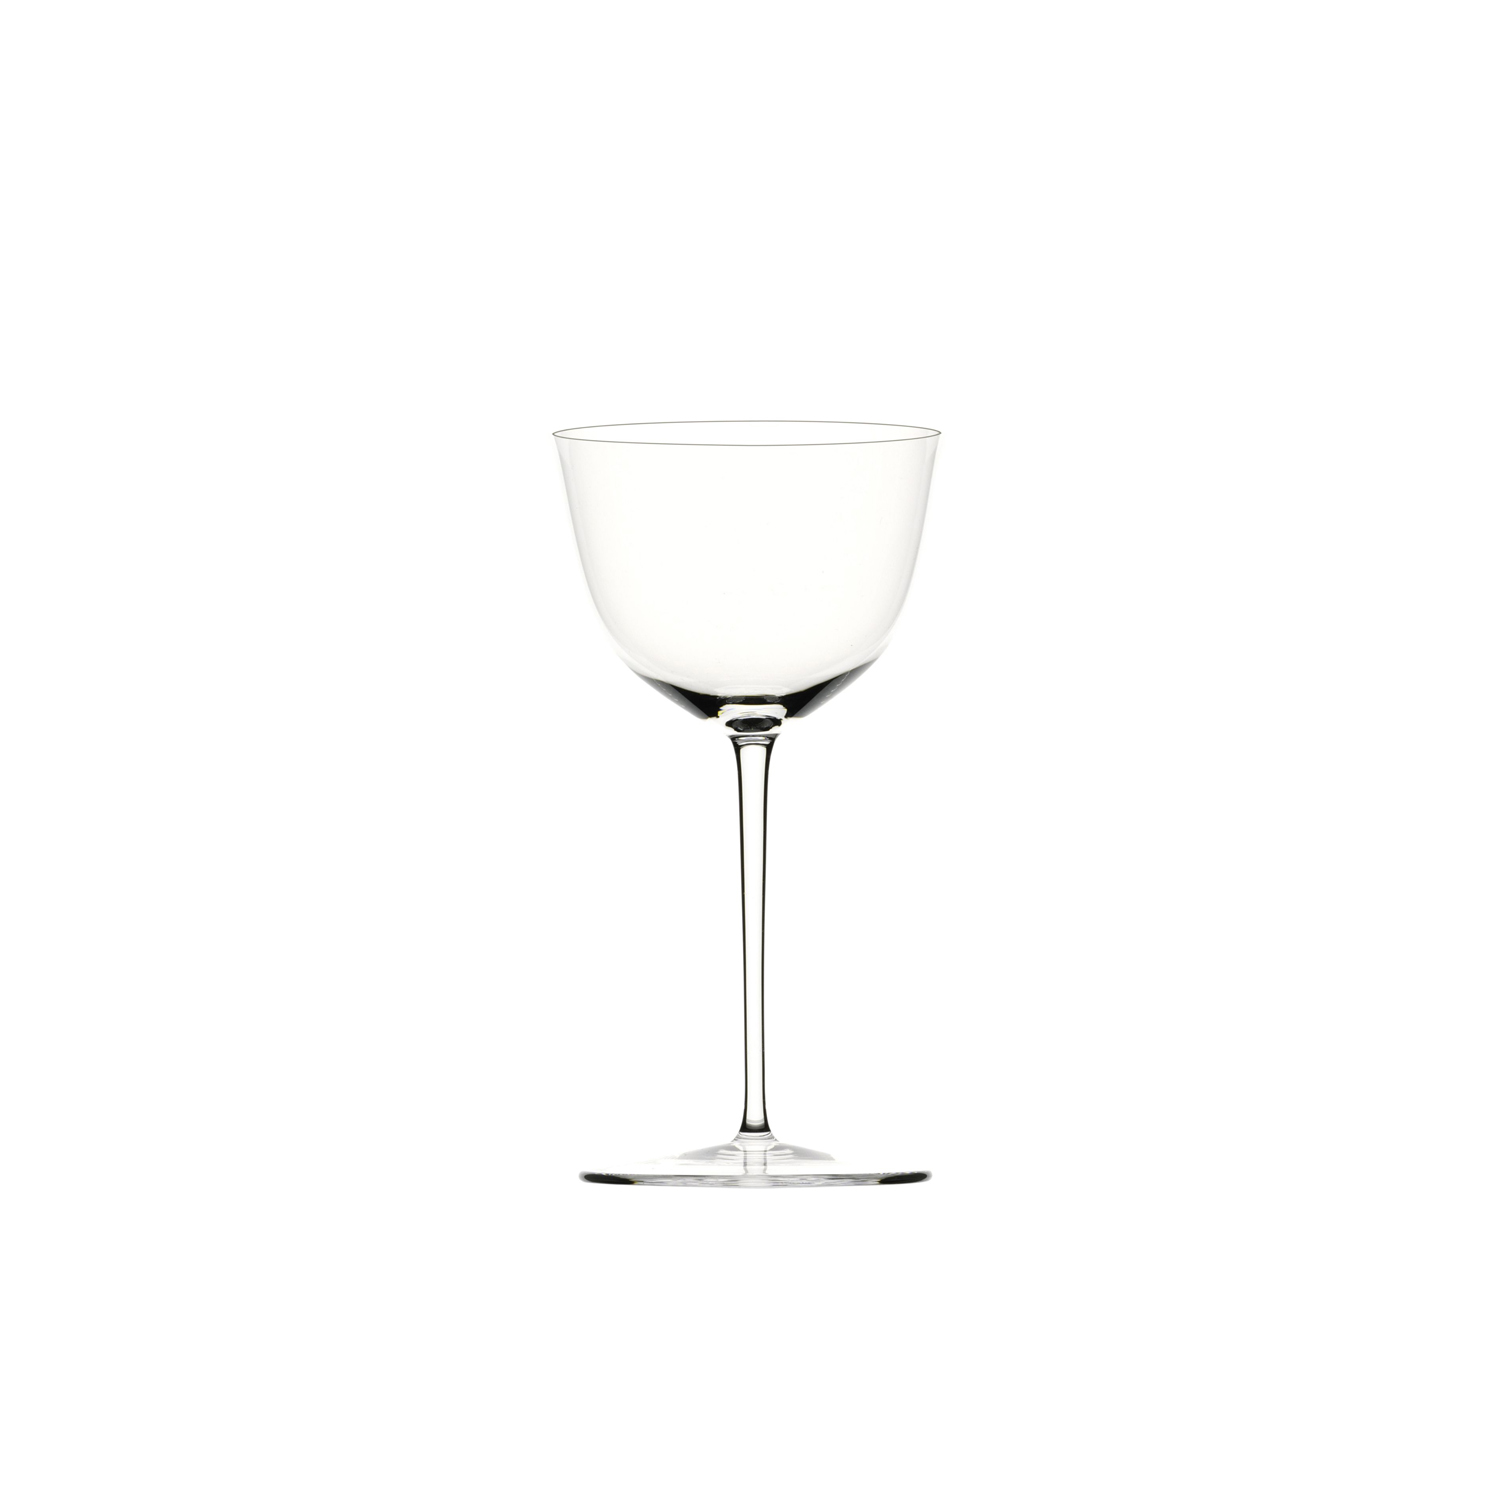 Drinking Set No.238 Wine Glass II - Set of 6 - The perfectly flowing contours of these original Hoffmann shapes make this muslin glass service a classic. Josef Hoffmann designed the elegantly balanced glasses for Lobmeyr as early as 1917. The material, extremely delicate muslin glass, hand-blown in wooden shapes, gives the series its elegance. | Matter of Stuff